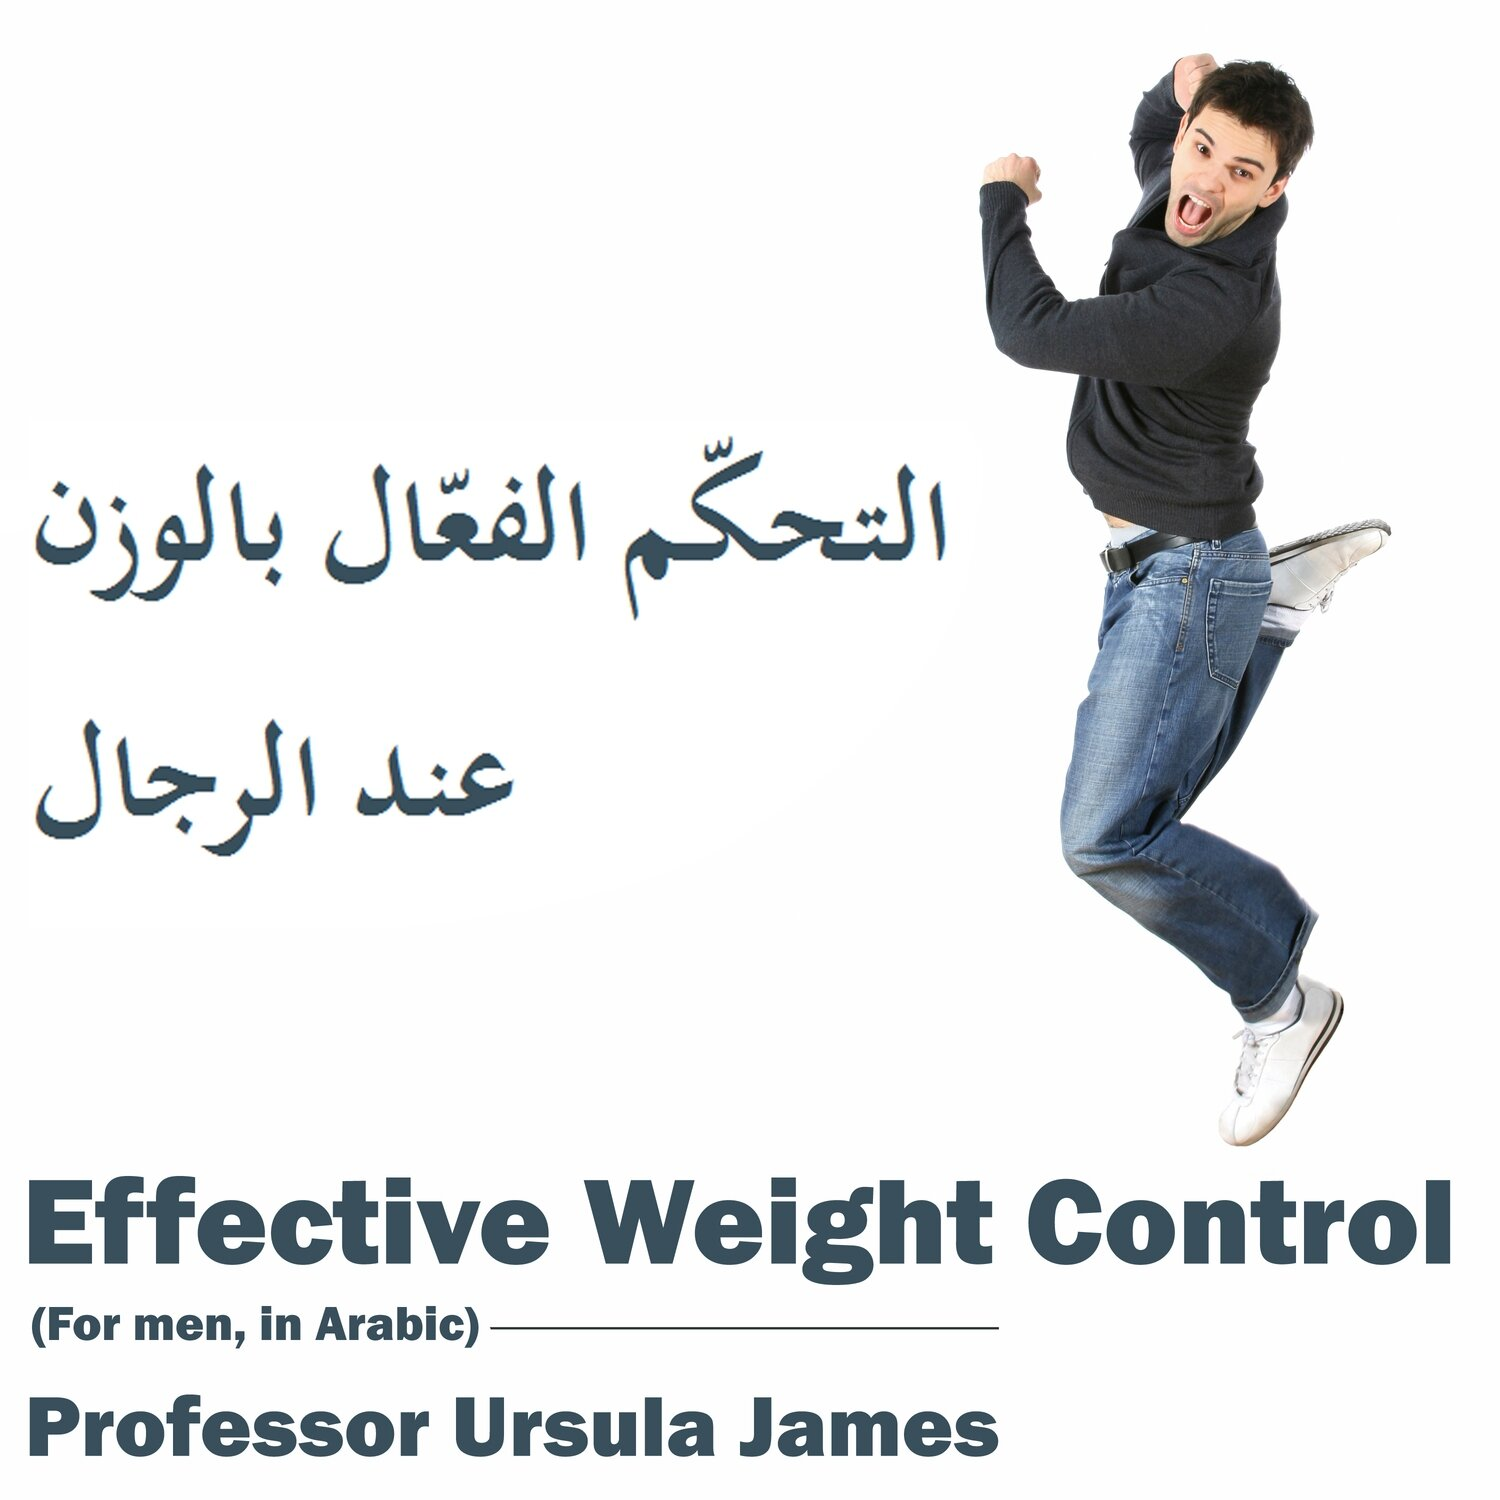 Effective Weight Control MP3 (Arabic Male version)